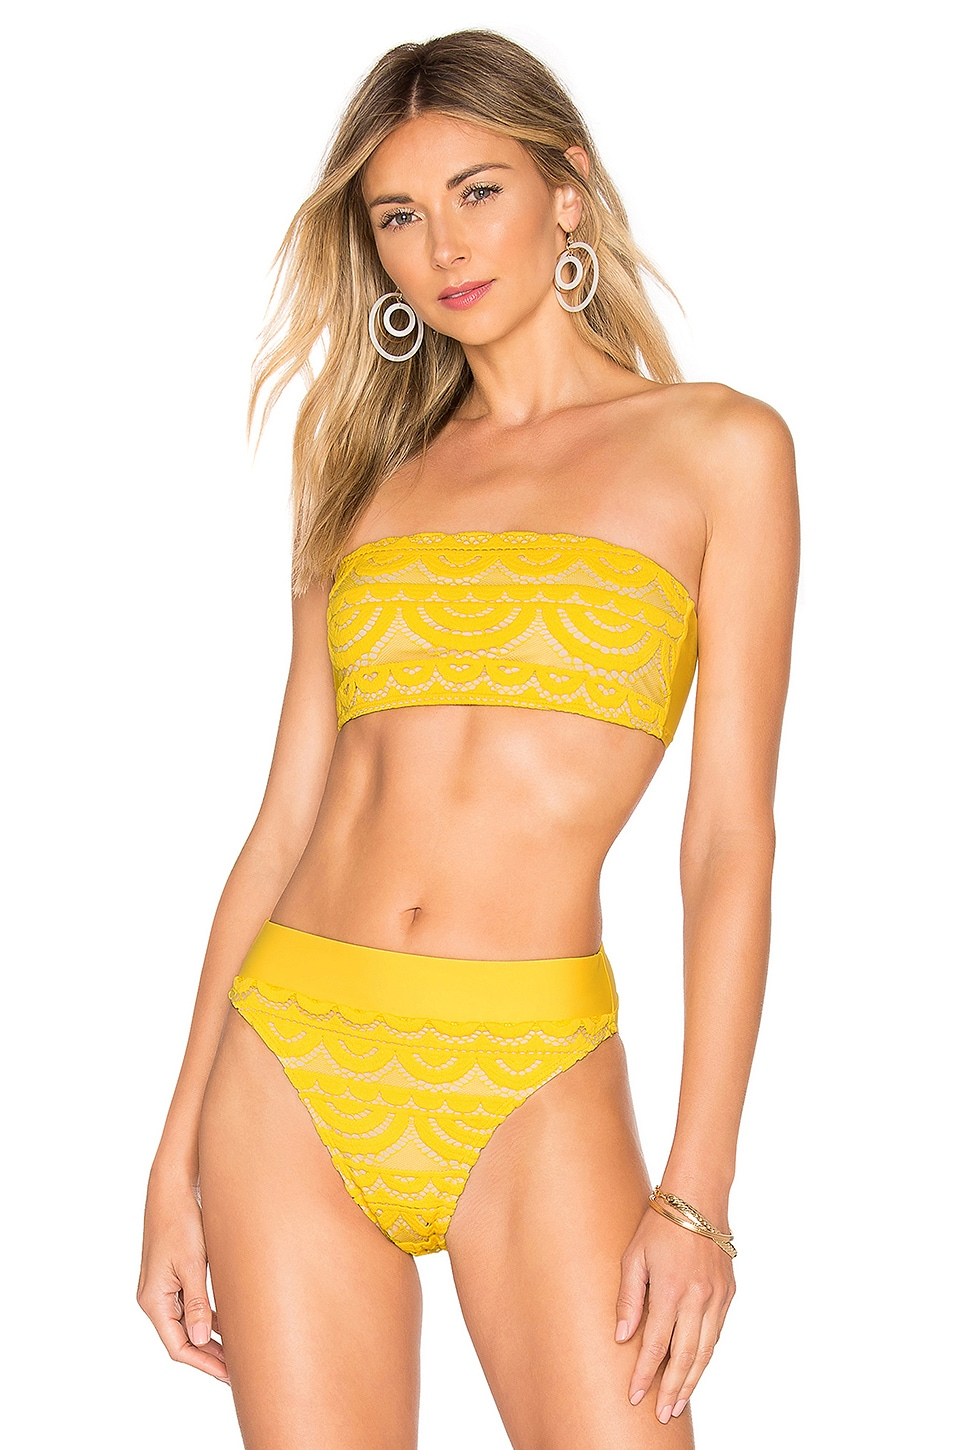 PILYQ Lace Bandeau in Marigold